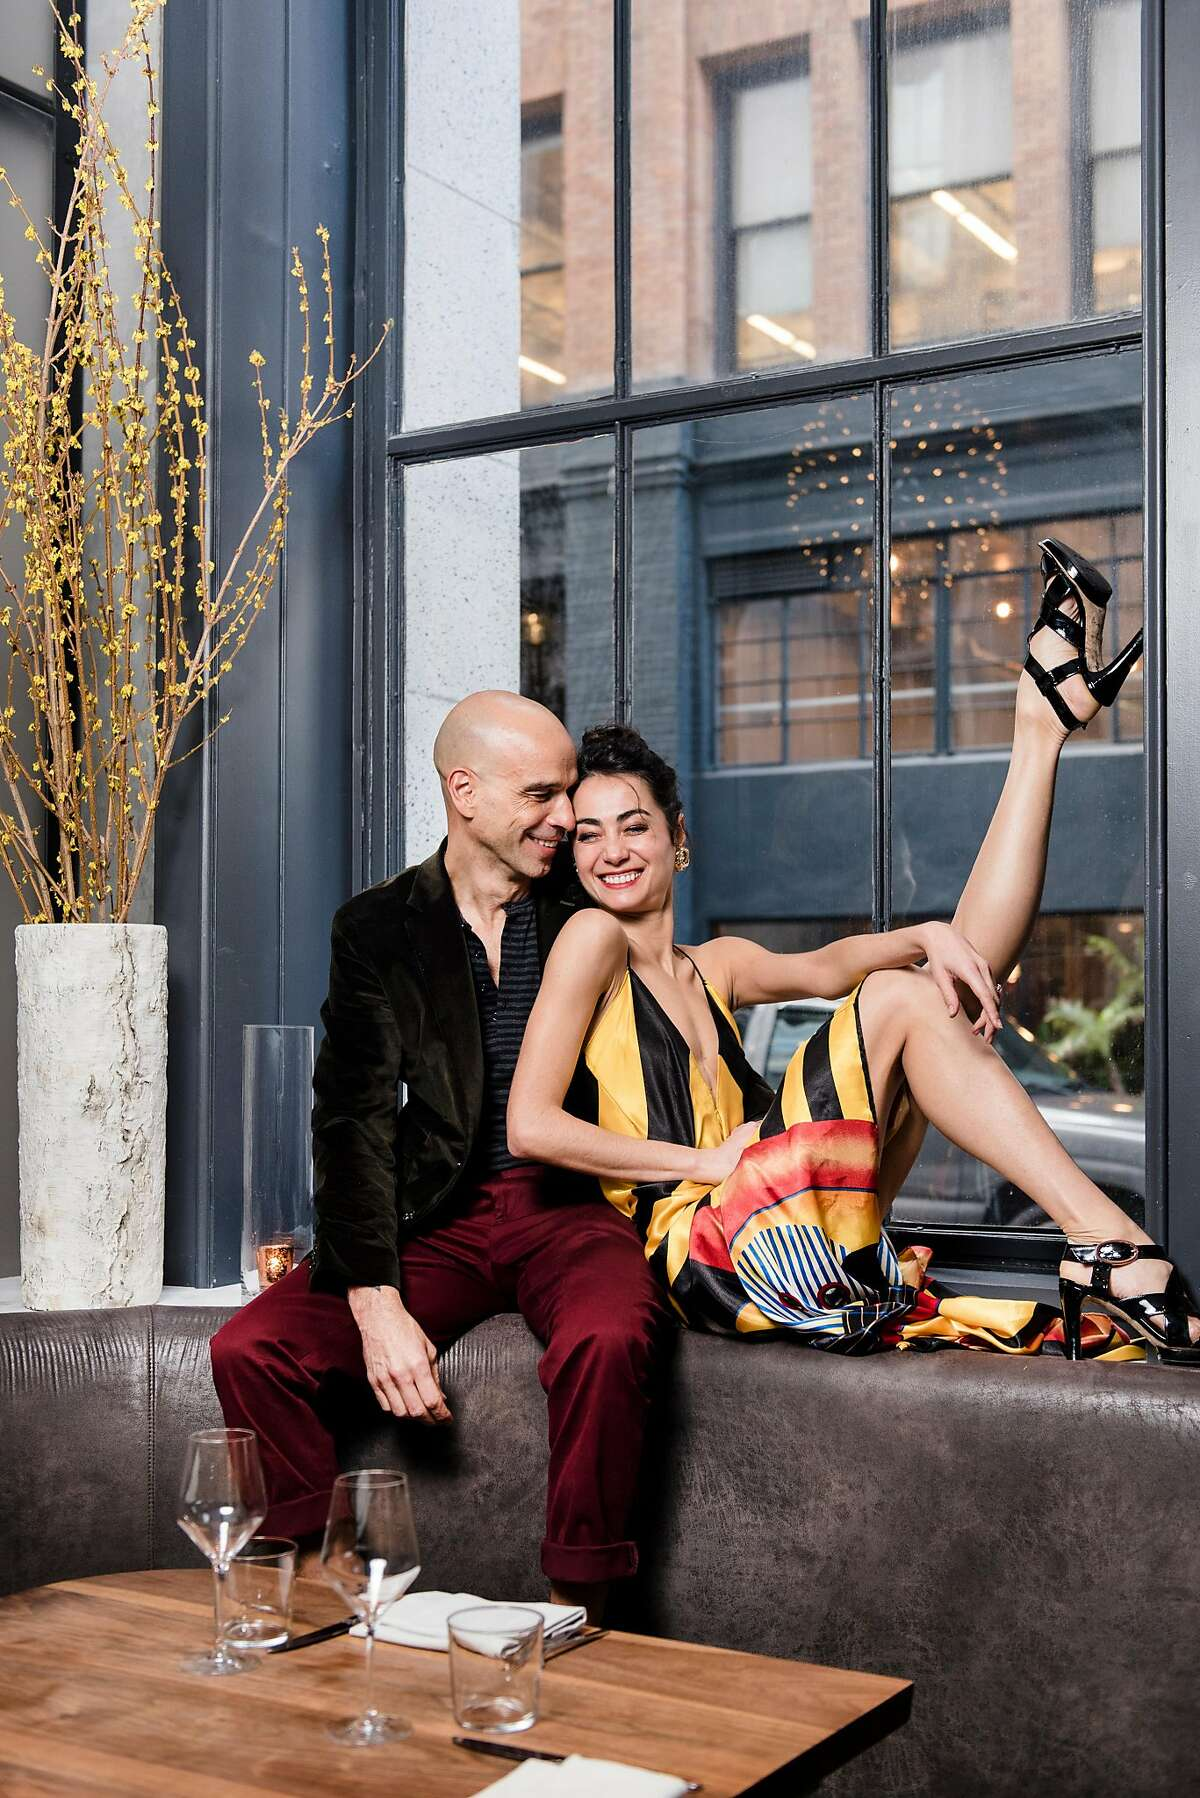 San Francisco Ballet principal dancer Mathilde Froustey, right, and Michelin-starred chef Mourad Lahlou, who are engaged to be married, pose for a portrait in San Francisco, Calif., on Monday, February 4, 2019.